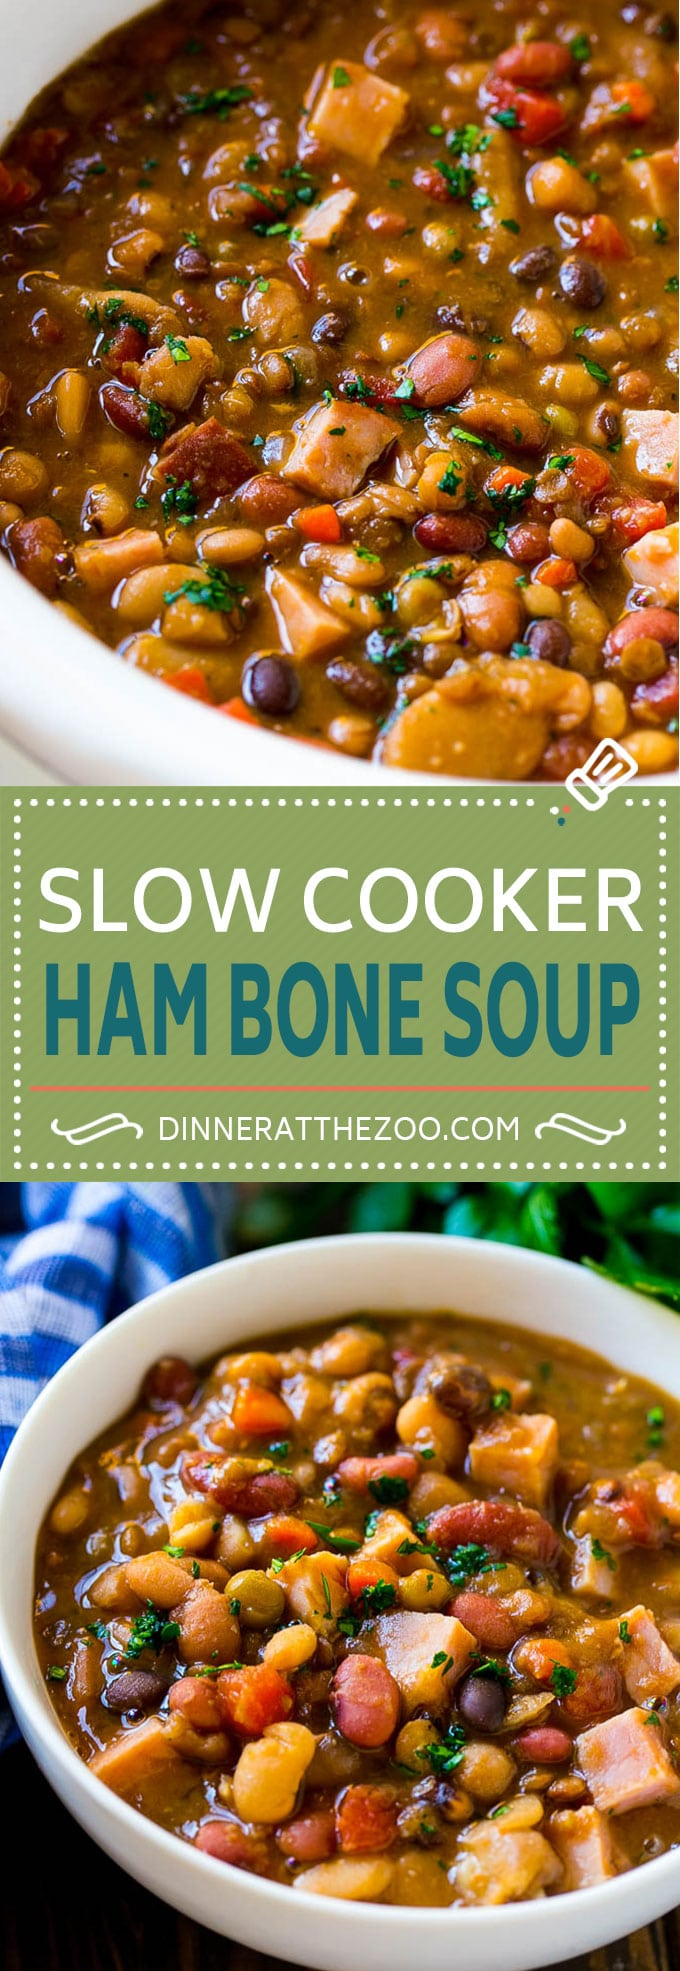 Slow Cooker Ham Bone Soup | Ham and Bean Soup | Ham Bone and Bean Soup | Ham Soup | Leftover Ham Recipe